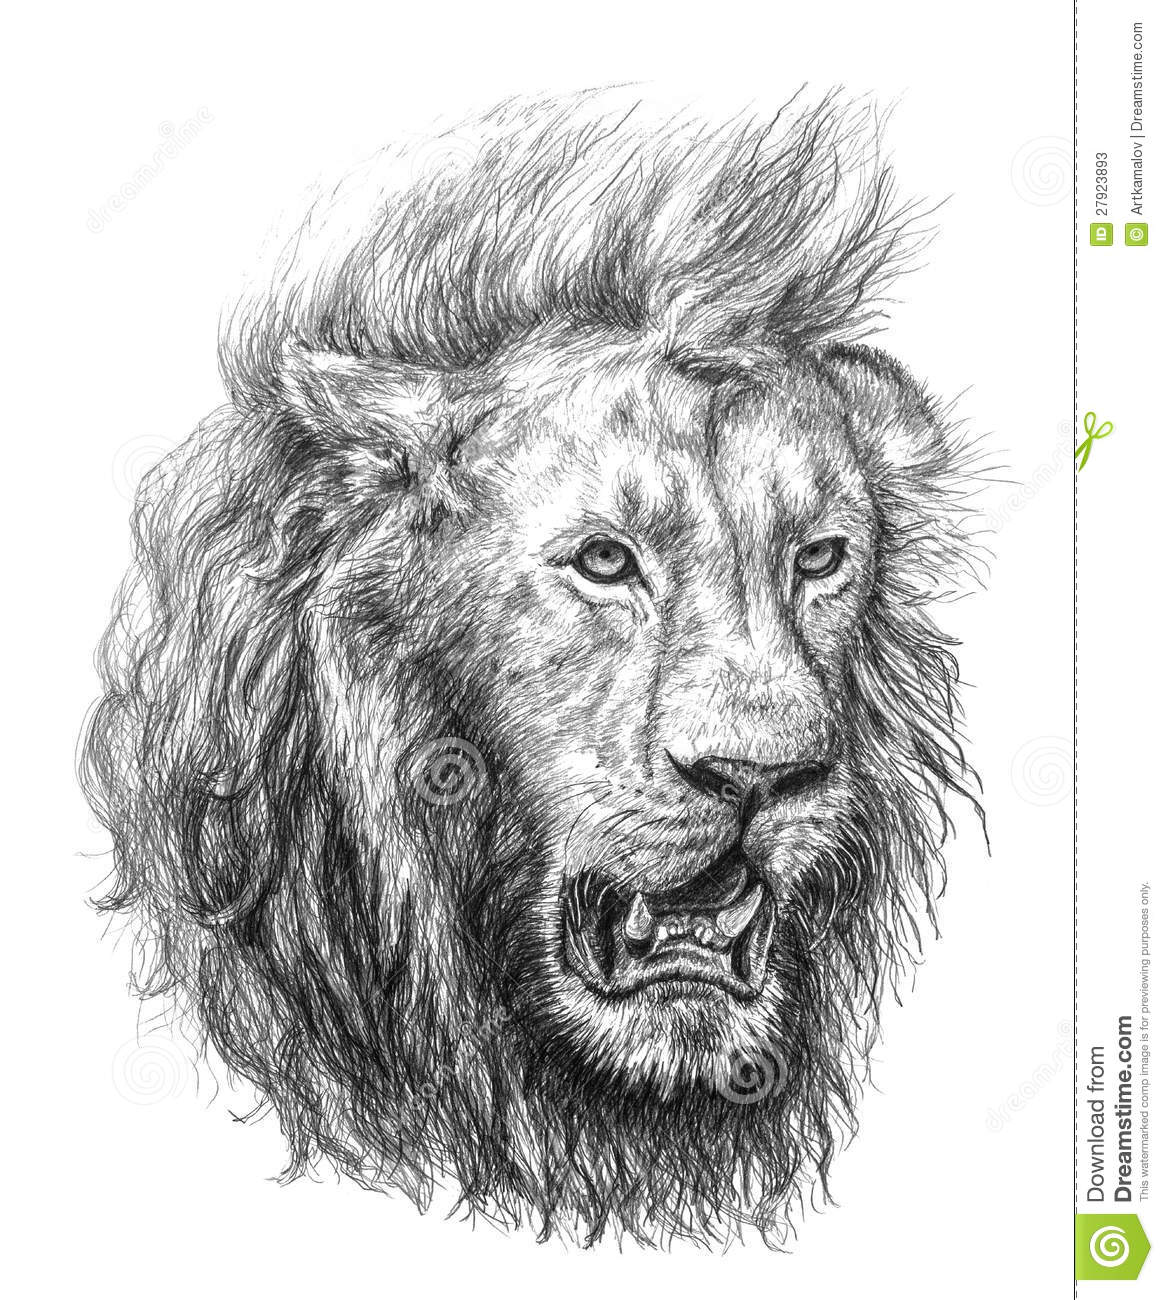 Stock photos pencil drawing of a lion s head image 27923893